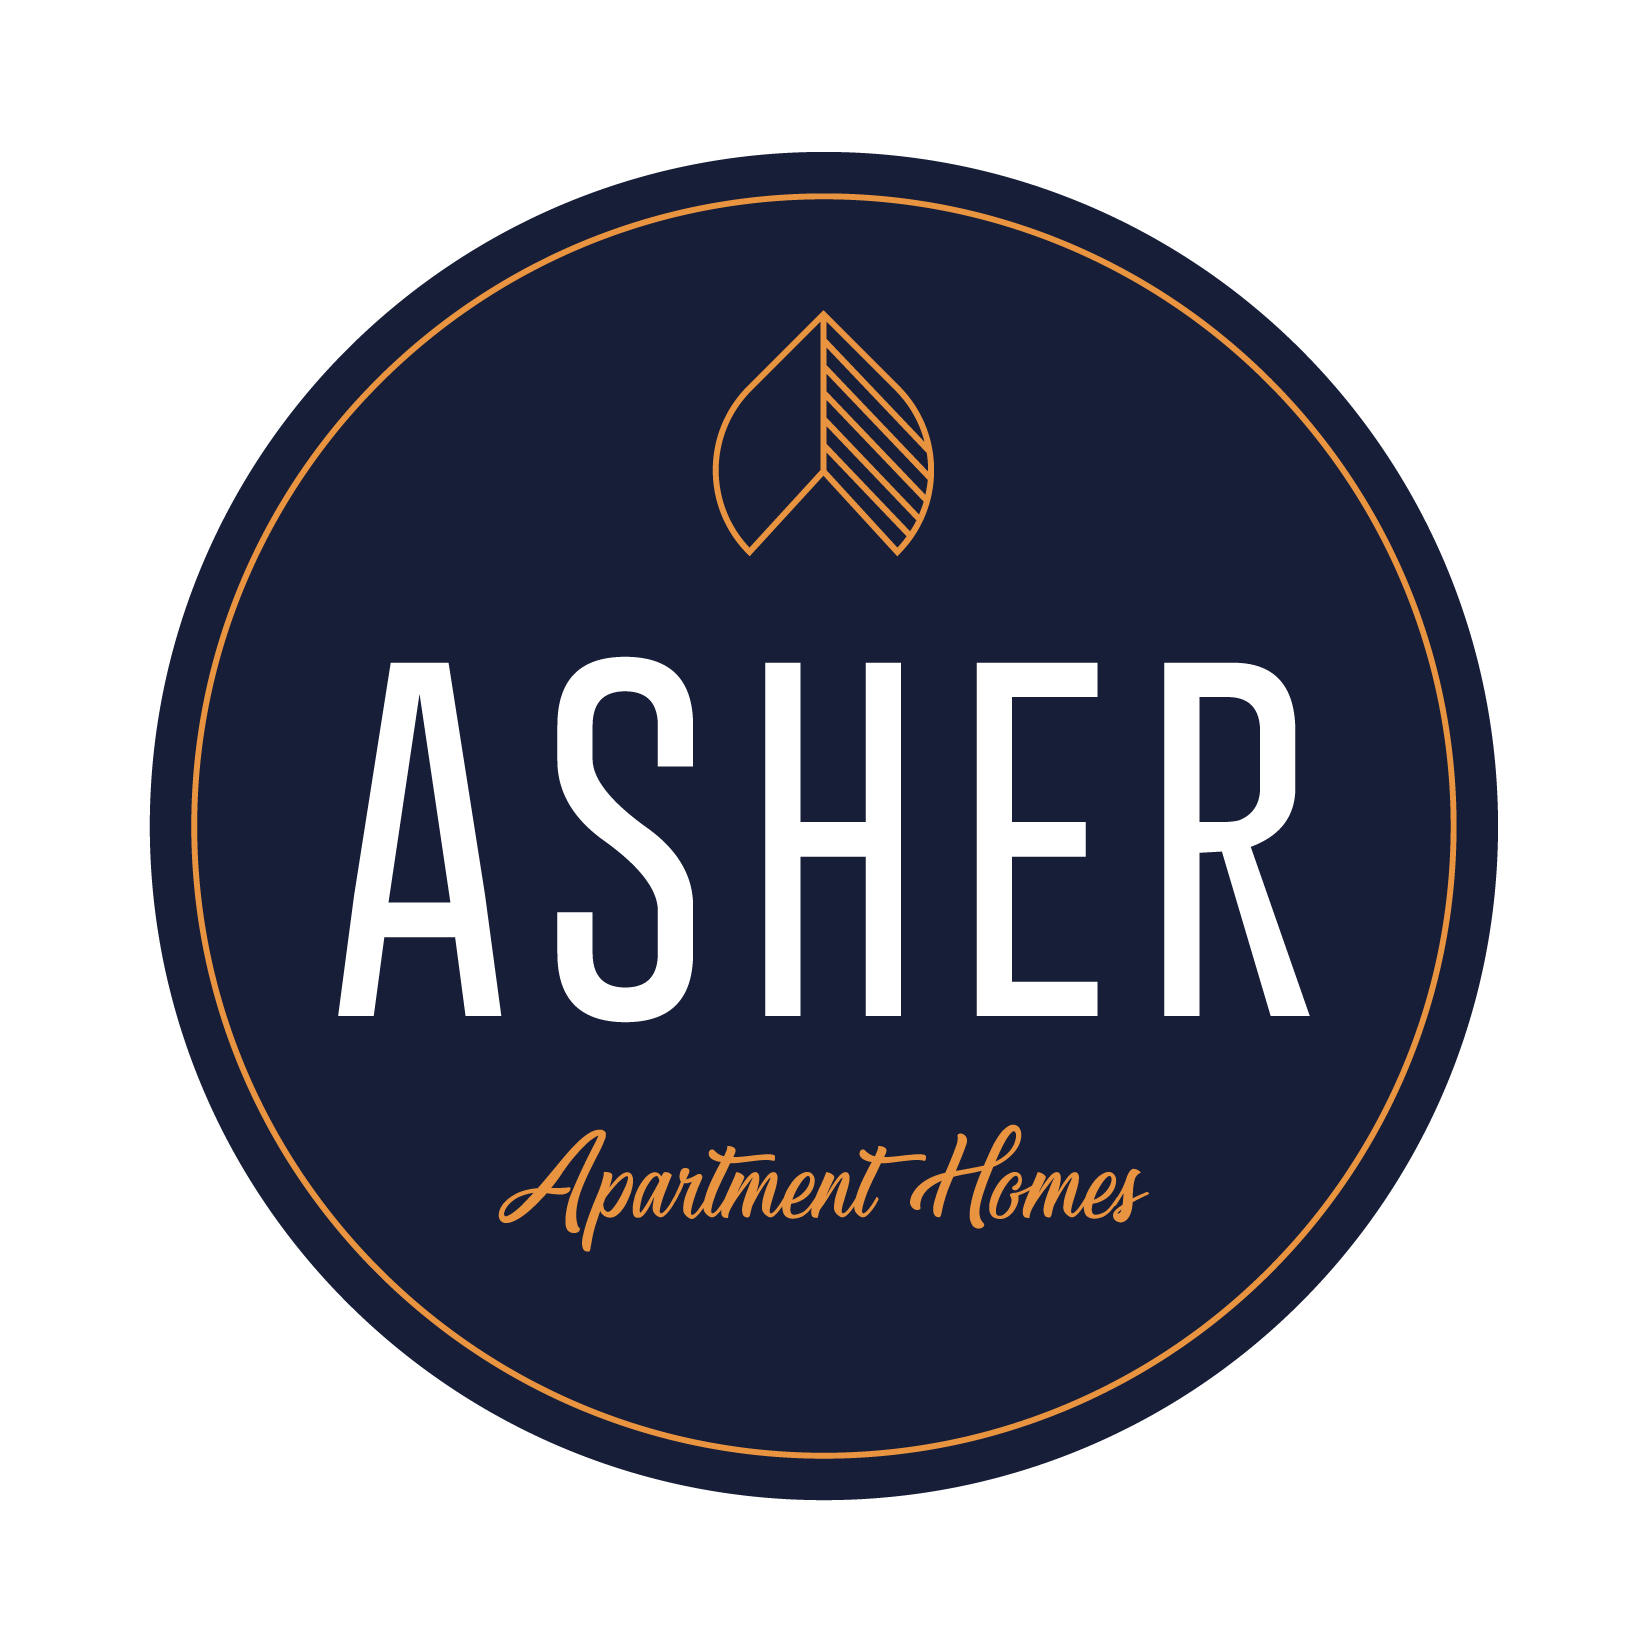 Asher Apartments